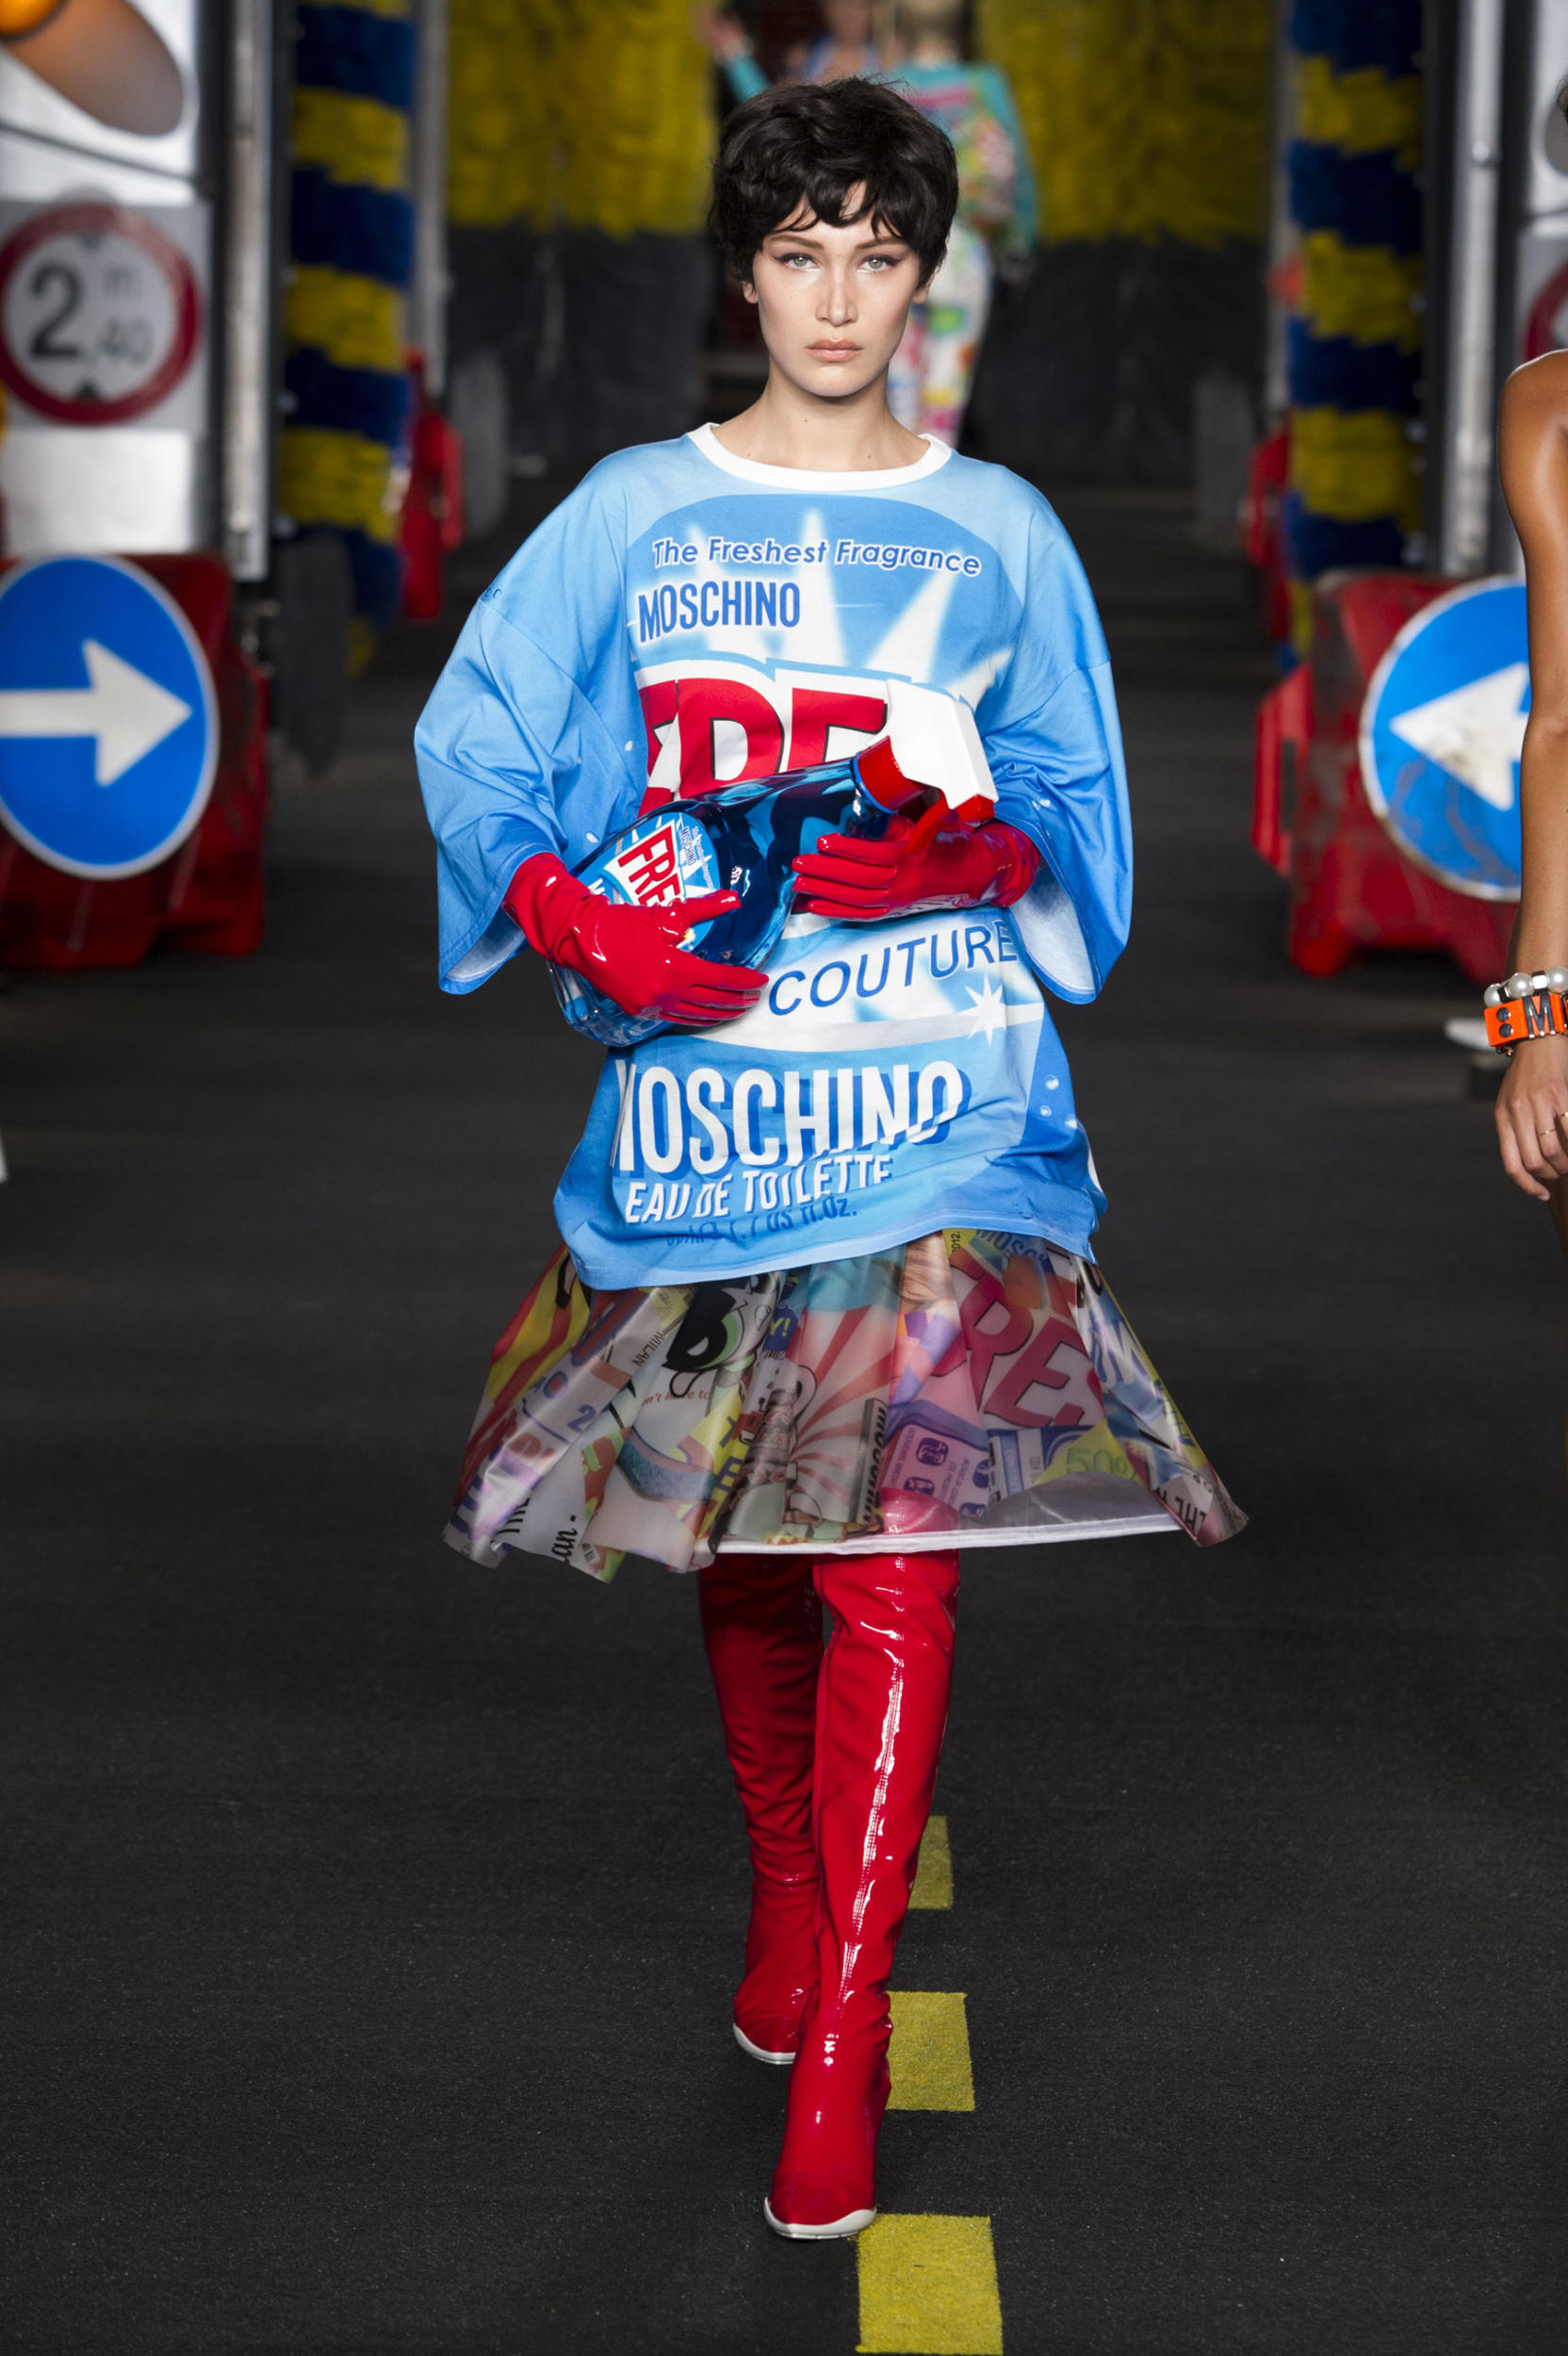 moschino-fashion-diaries-17